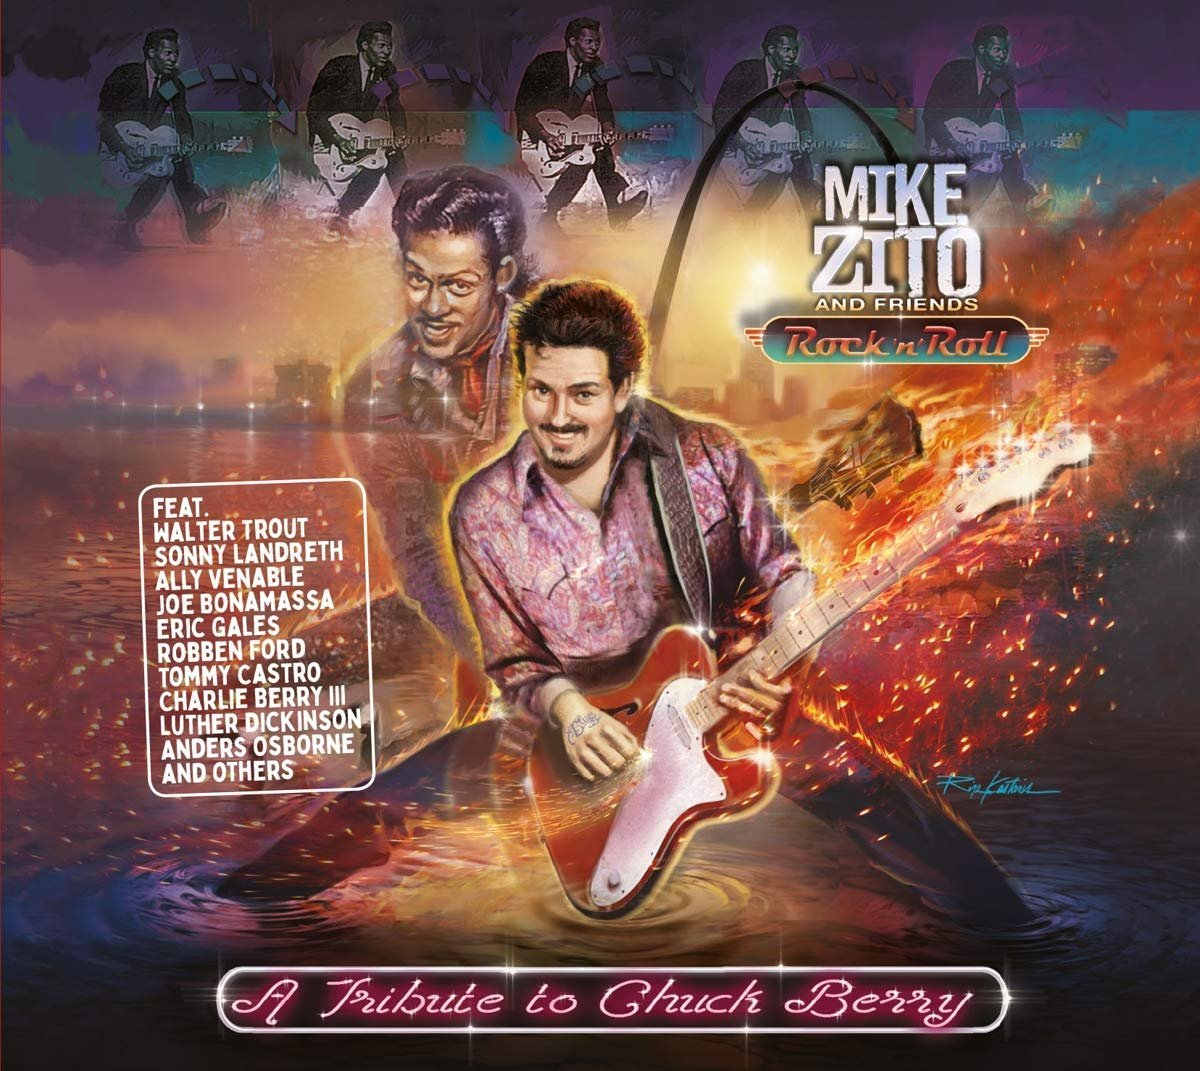 Mike Zito and Friends - Rock N Roll - A Tribute To Chuck Berry